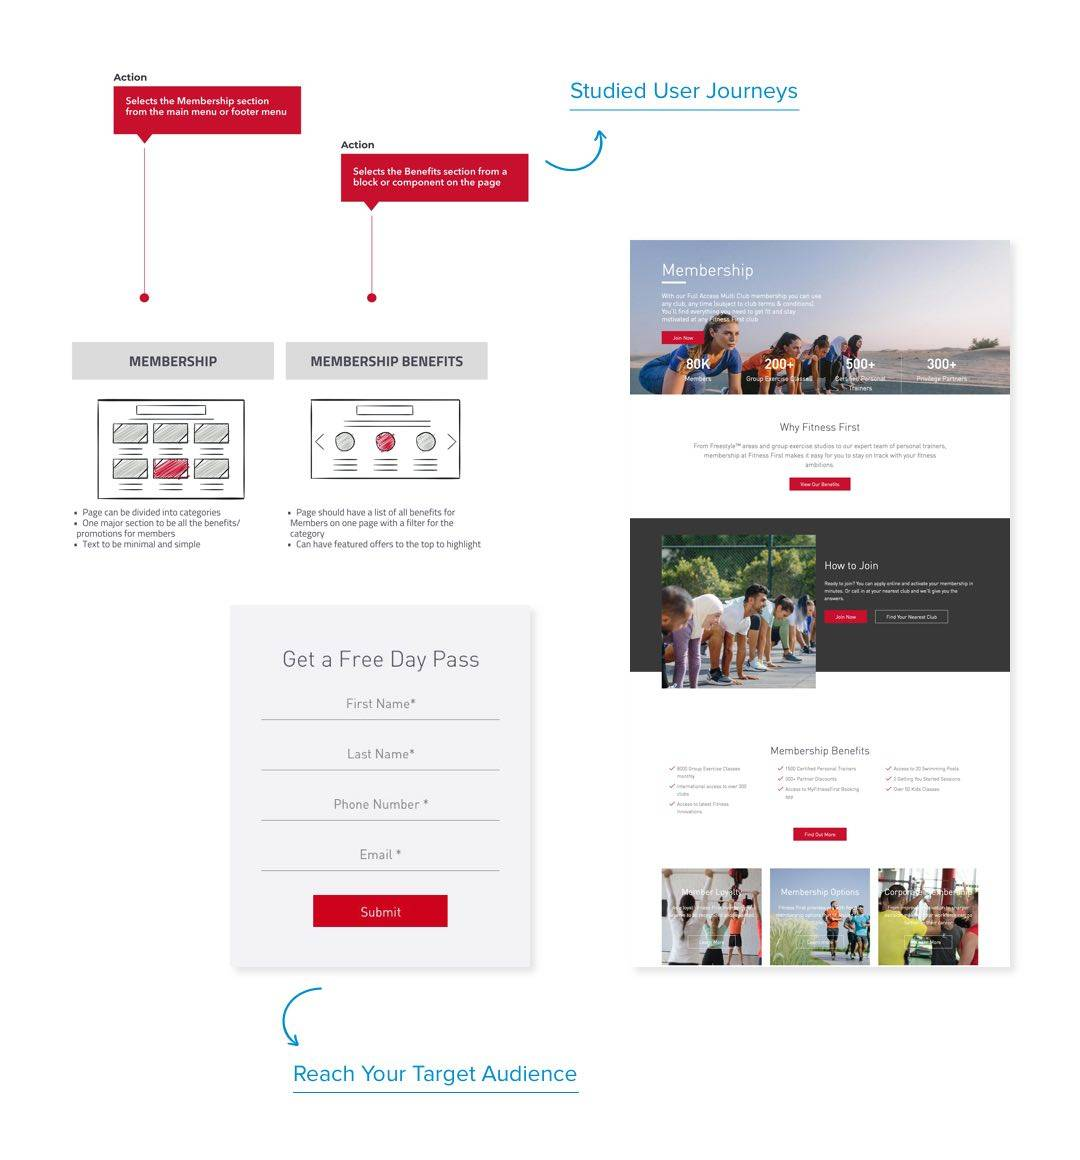 Design User Journeys and Customer Journeys